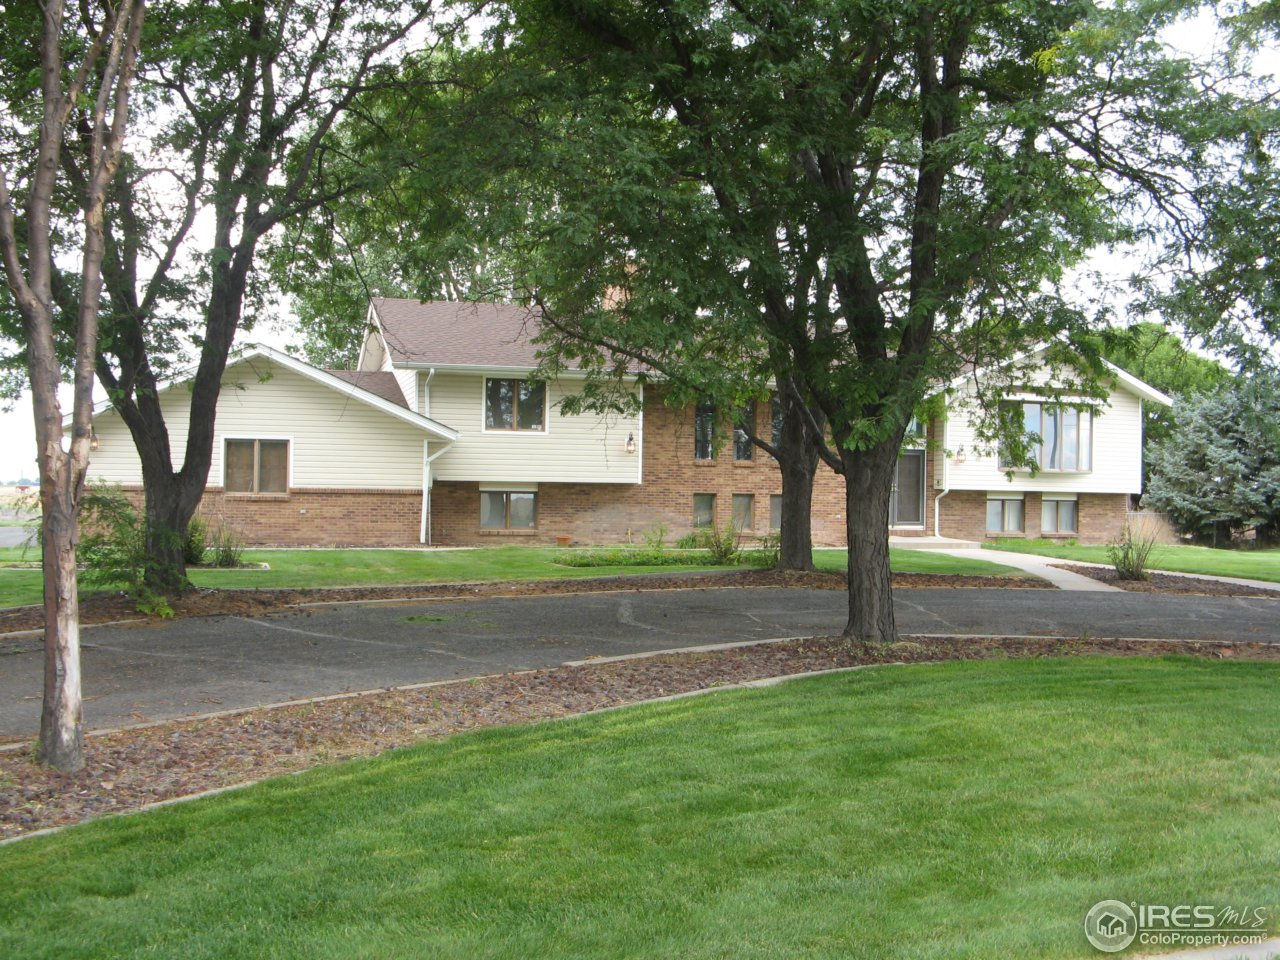 1645 N 35th Ave Ct, Greeley, CO 80631